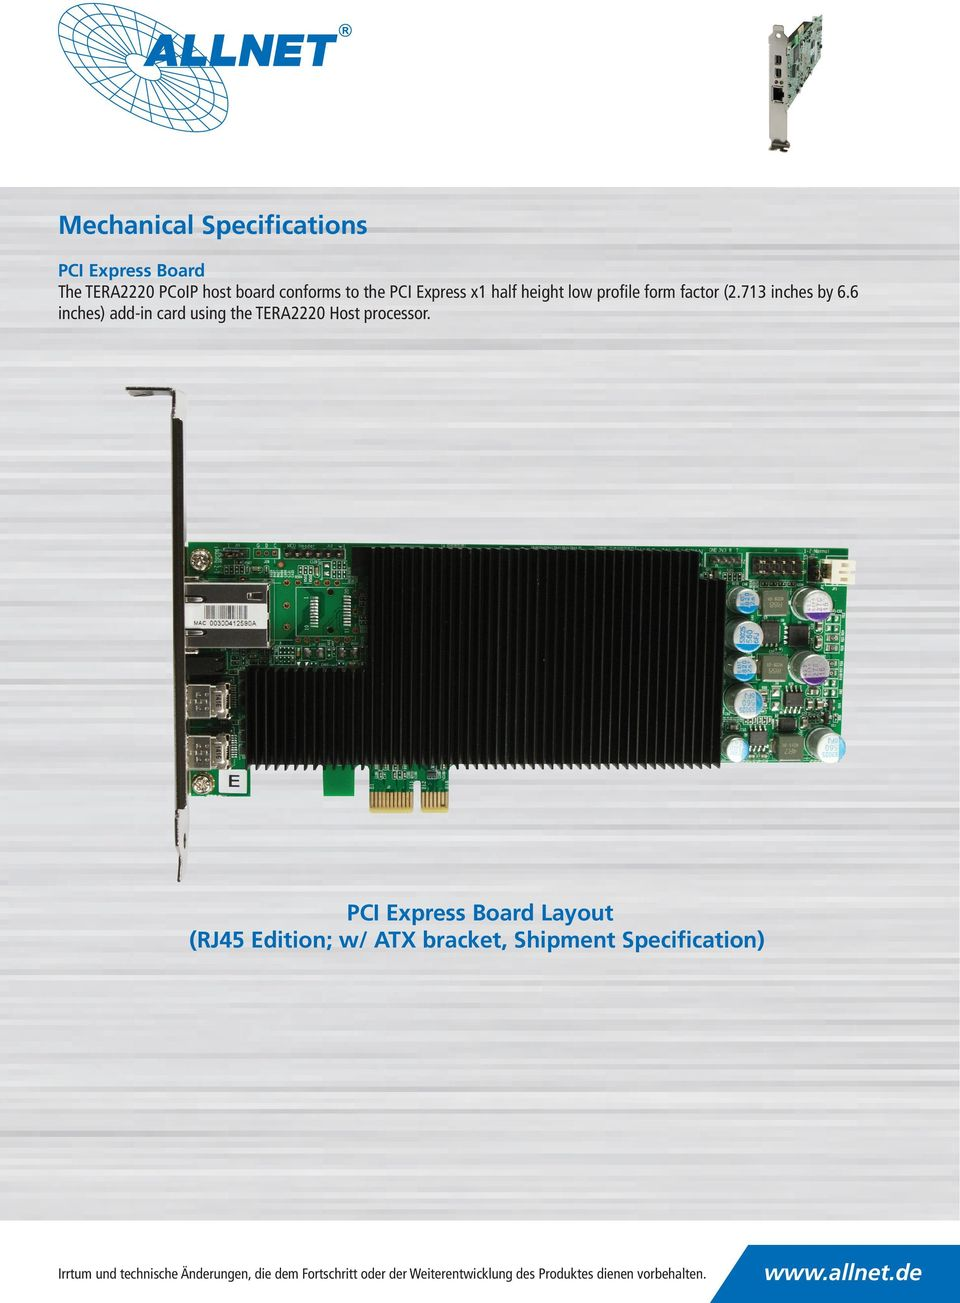 713 inches by 6.6 inches) add-in card using the TERA2220 Host processor.